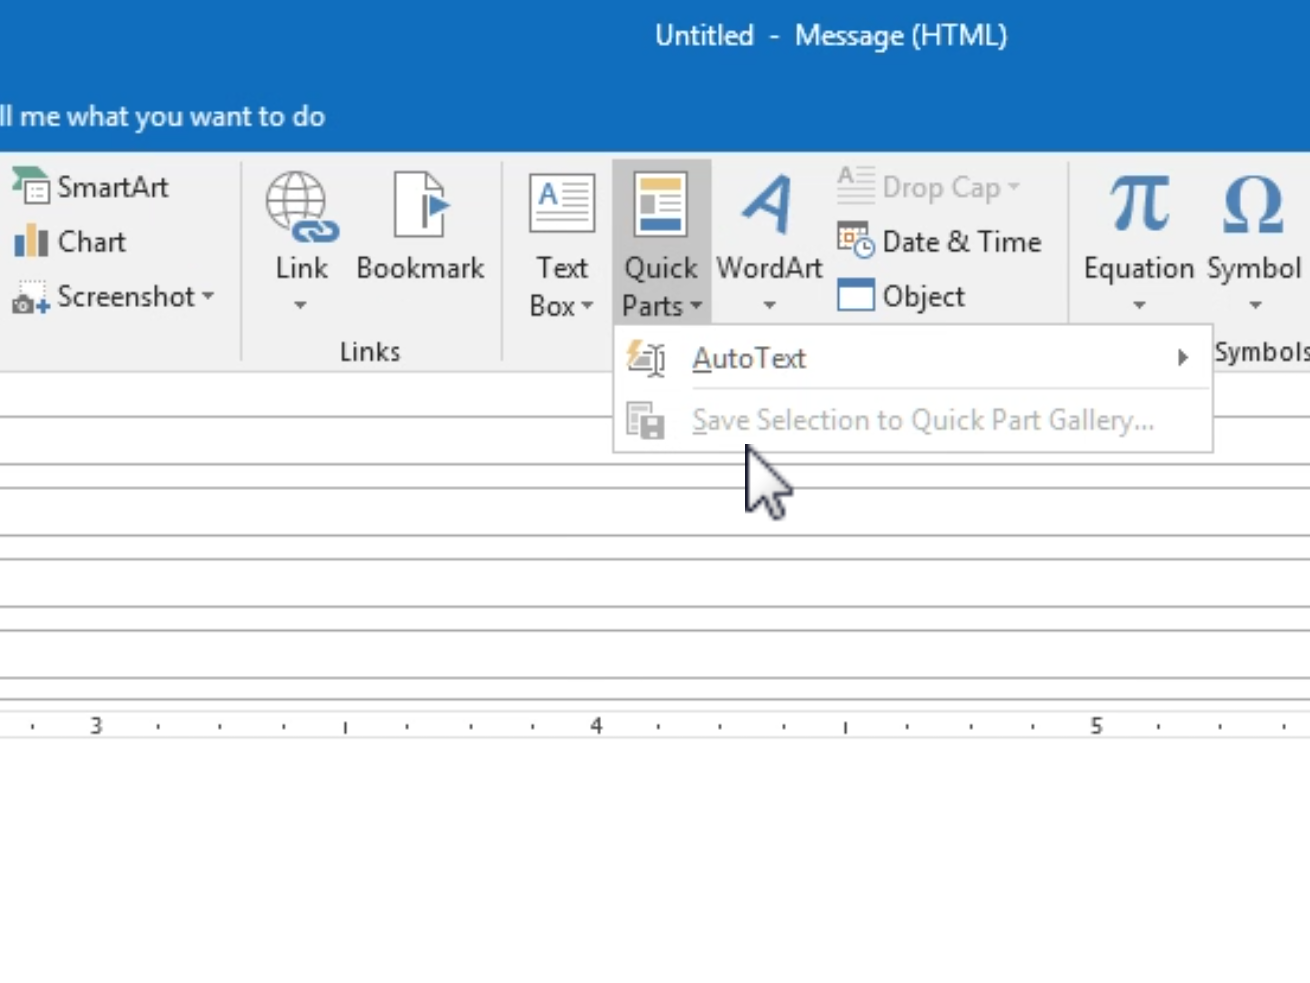 MS OUTLOOK EMAIL - \